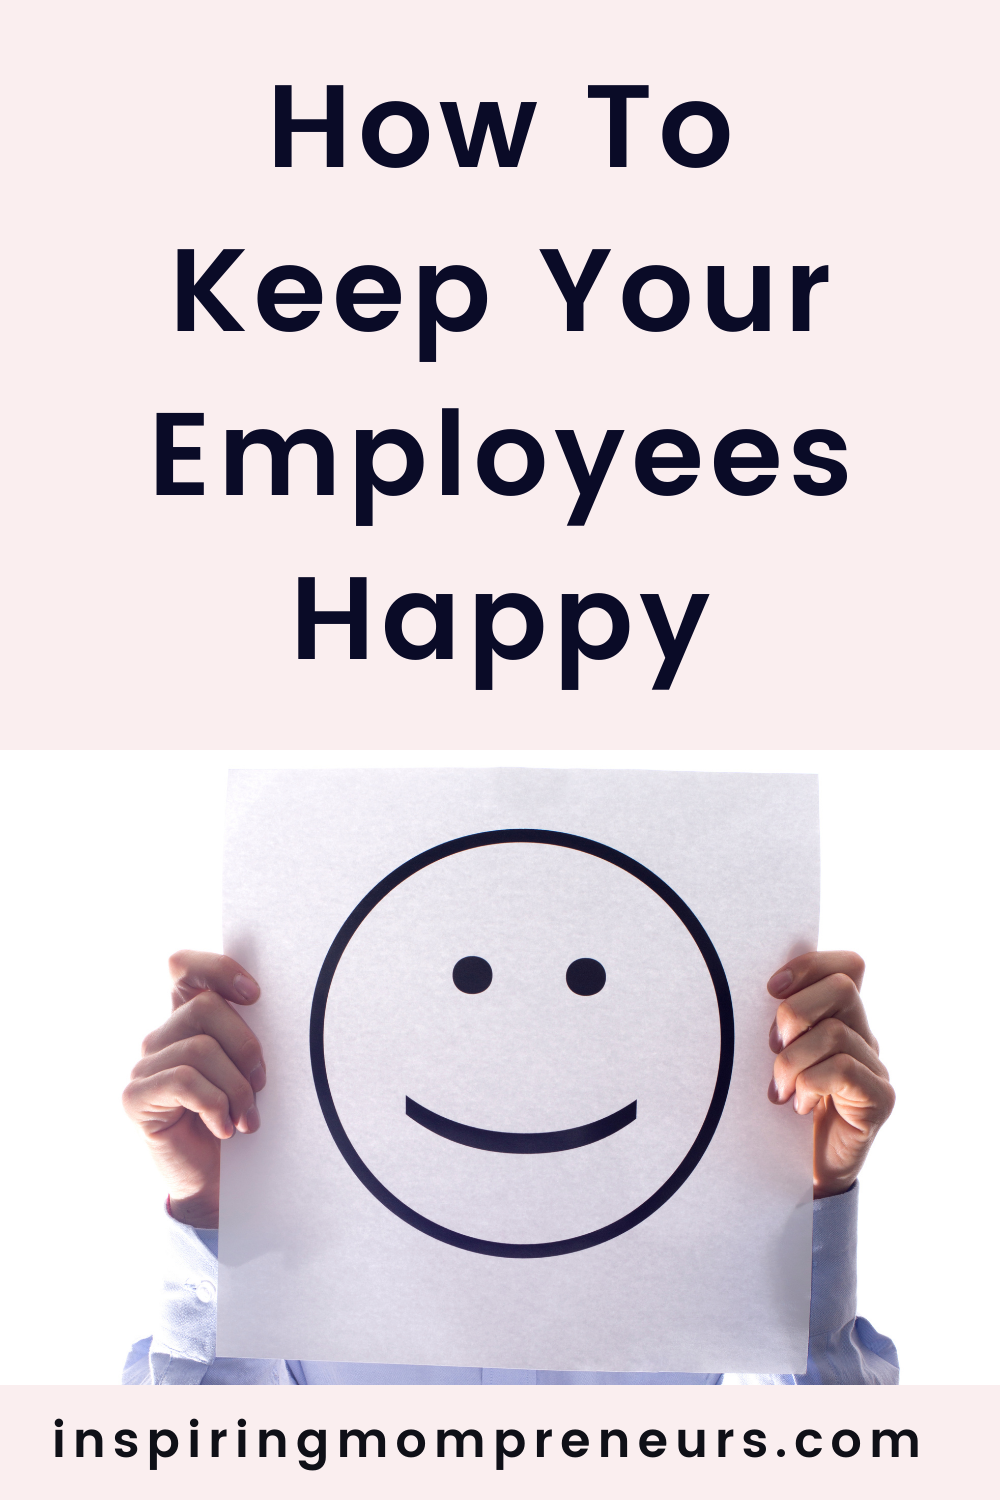 When your employees' needs are met, they develop a positive attitude toward your organization and its aims. This is how to keep your employees happy.  #howto #keepemployeeshappy #employeesatisfaction #employeewellbeing